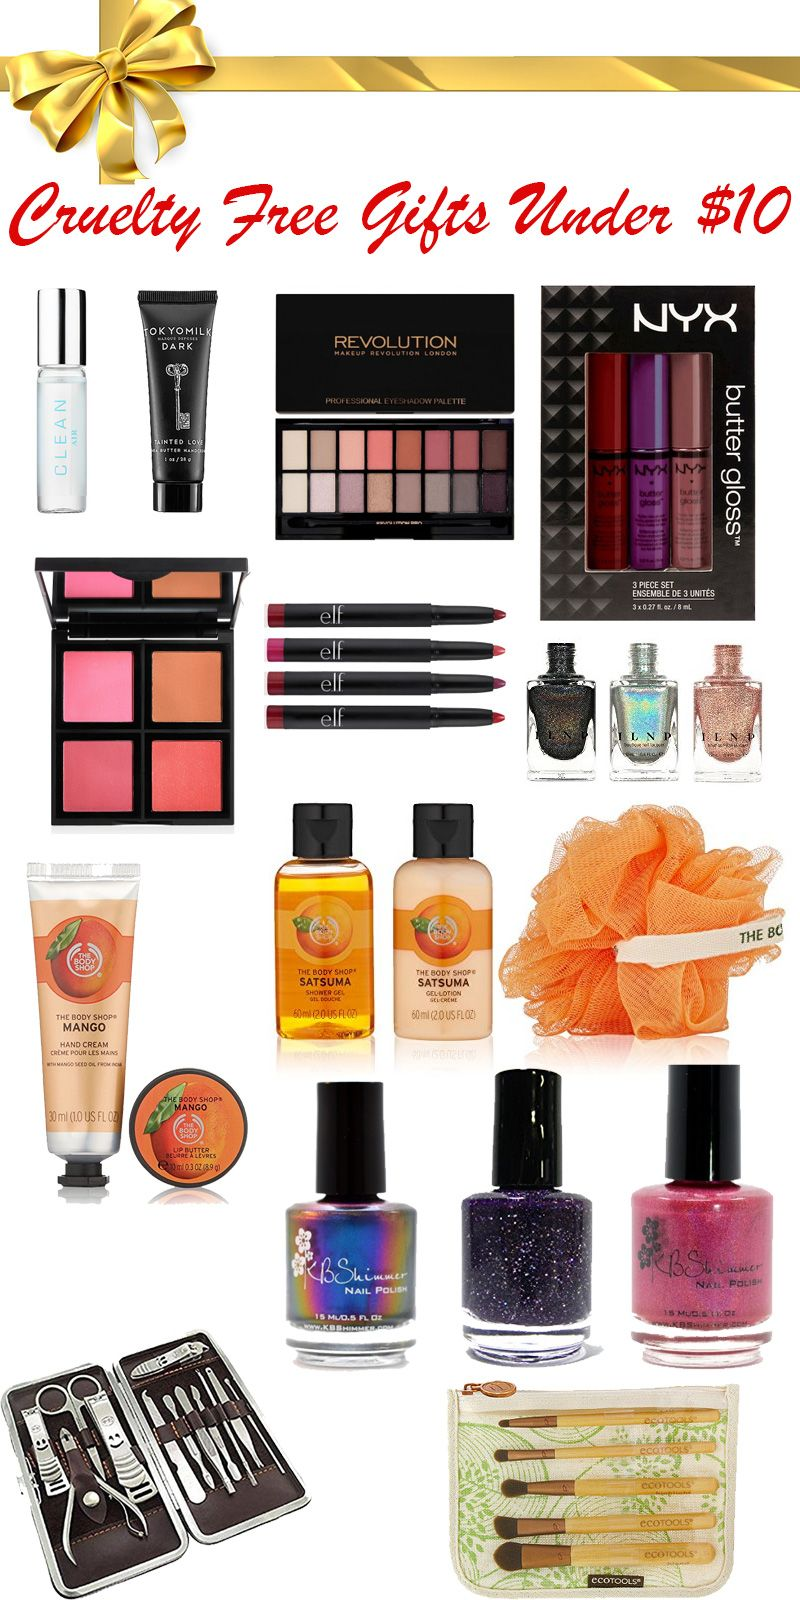 Cruelty Free Gifts Under $10